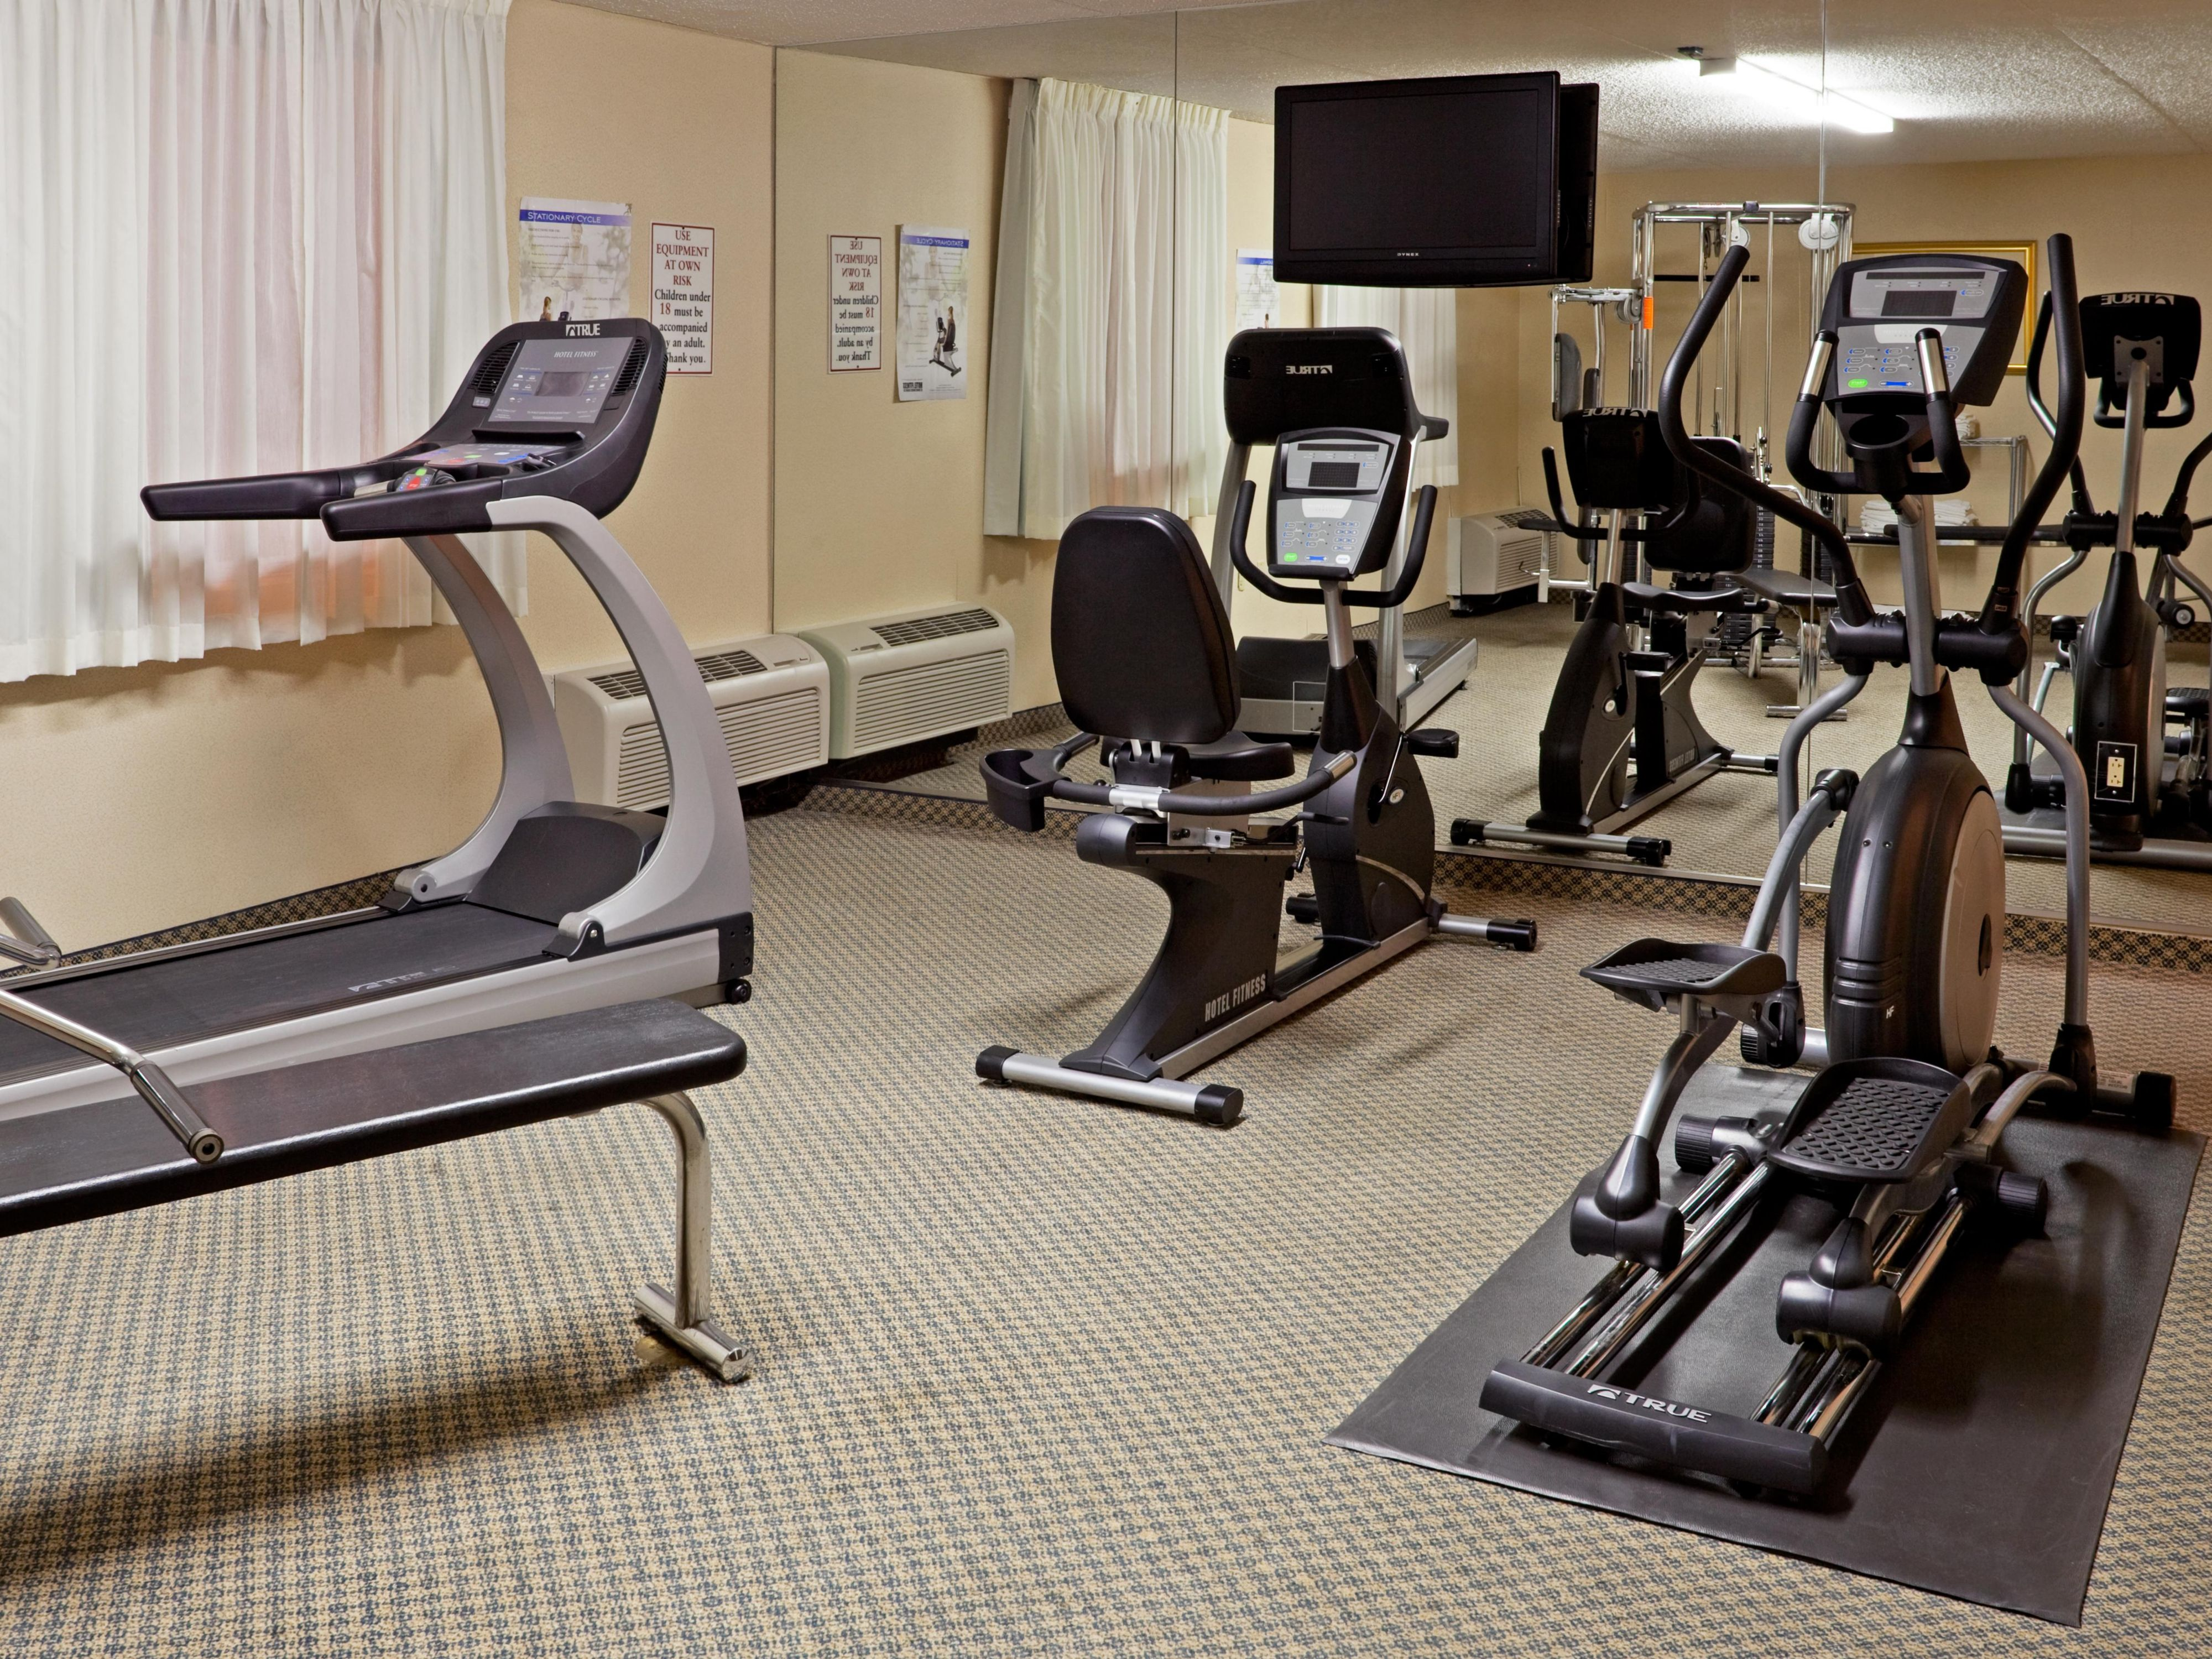 Work off some stress or keep to your routine at our fitness center